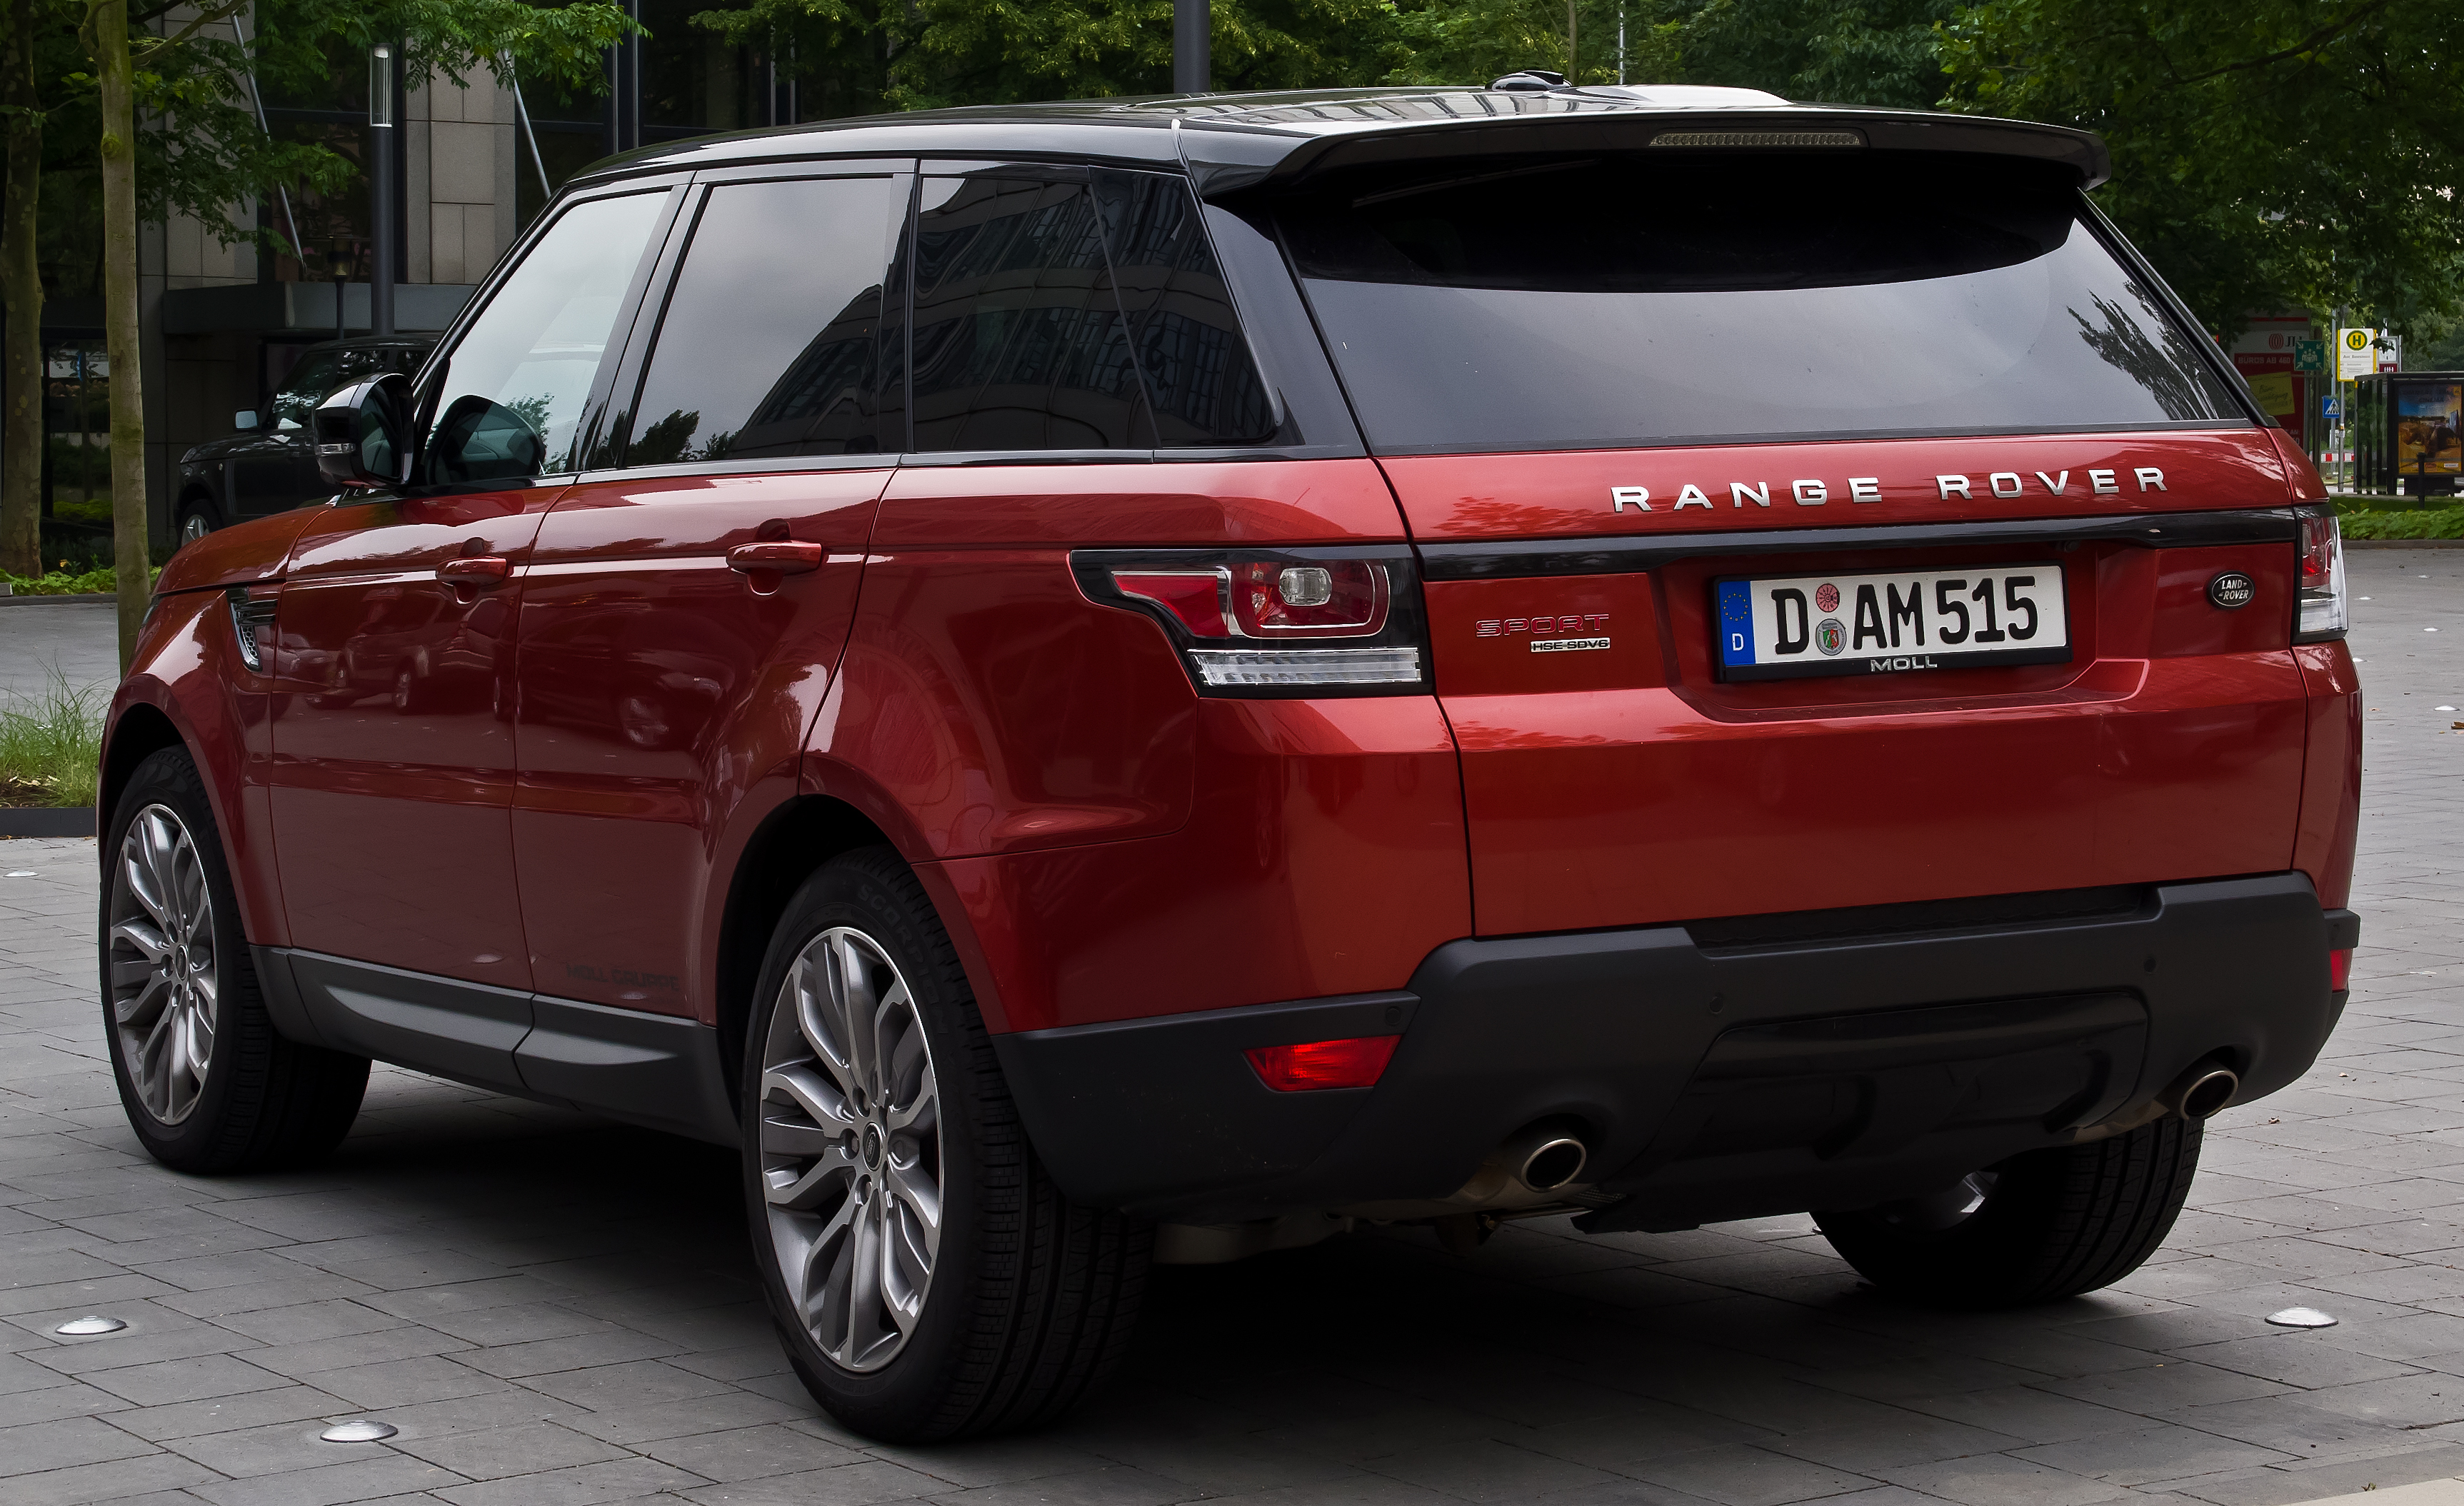 file range rover sport sdv6 hse ii heckansicht 12 juli 2014 d wikimedia. Black Bedroom Furniture Sets. Home Design Ideas